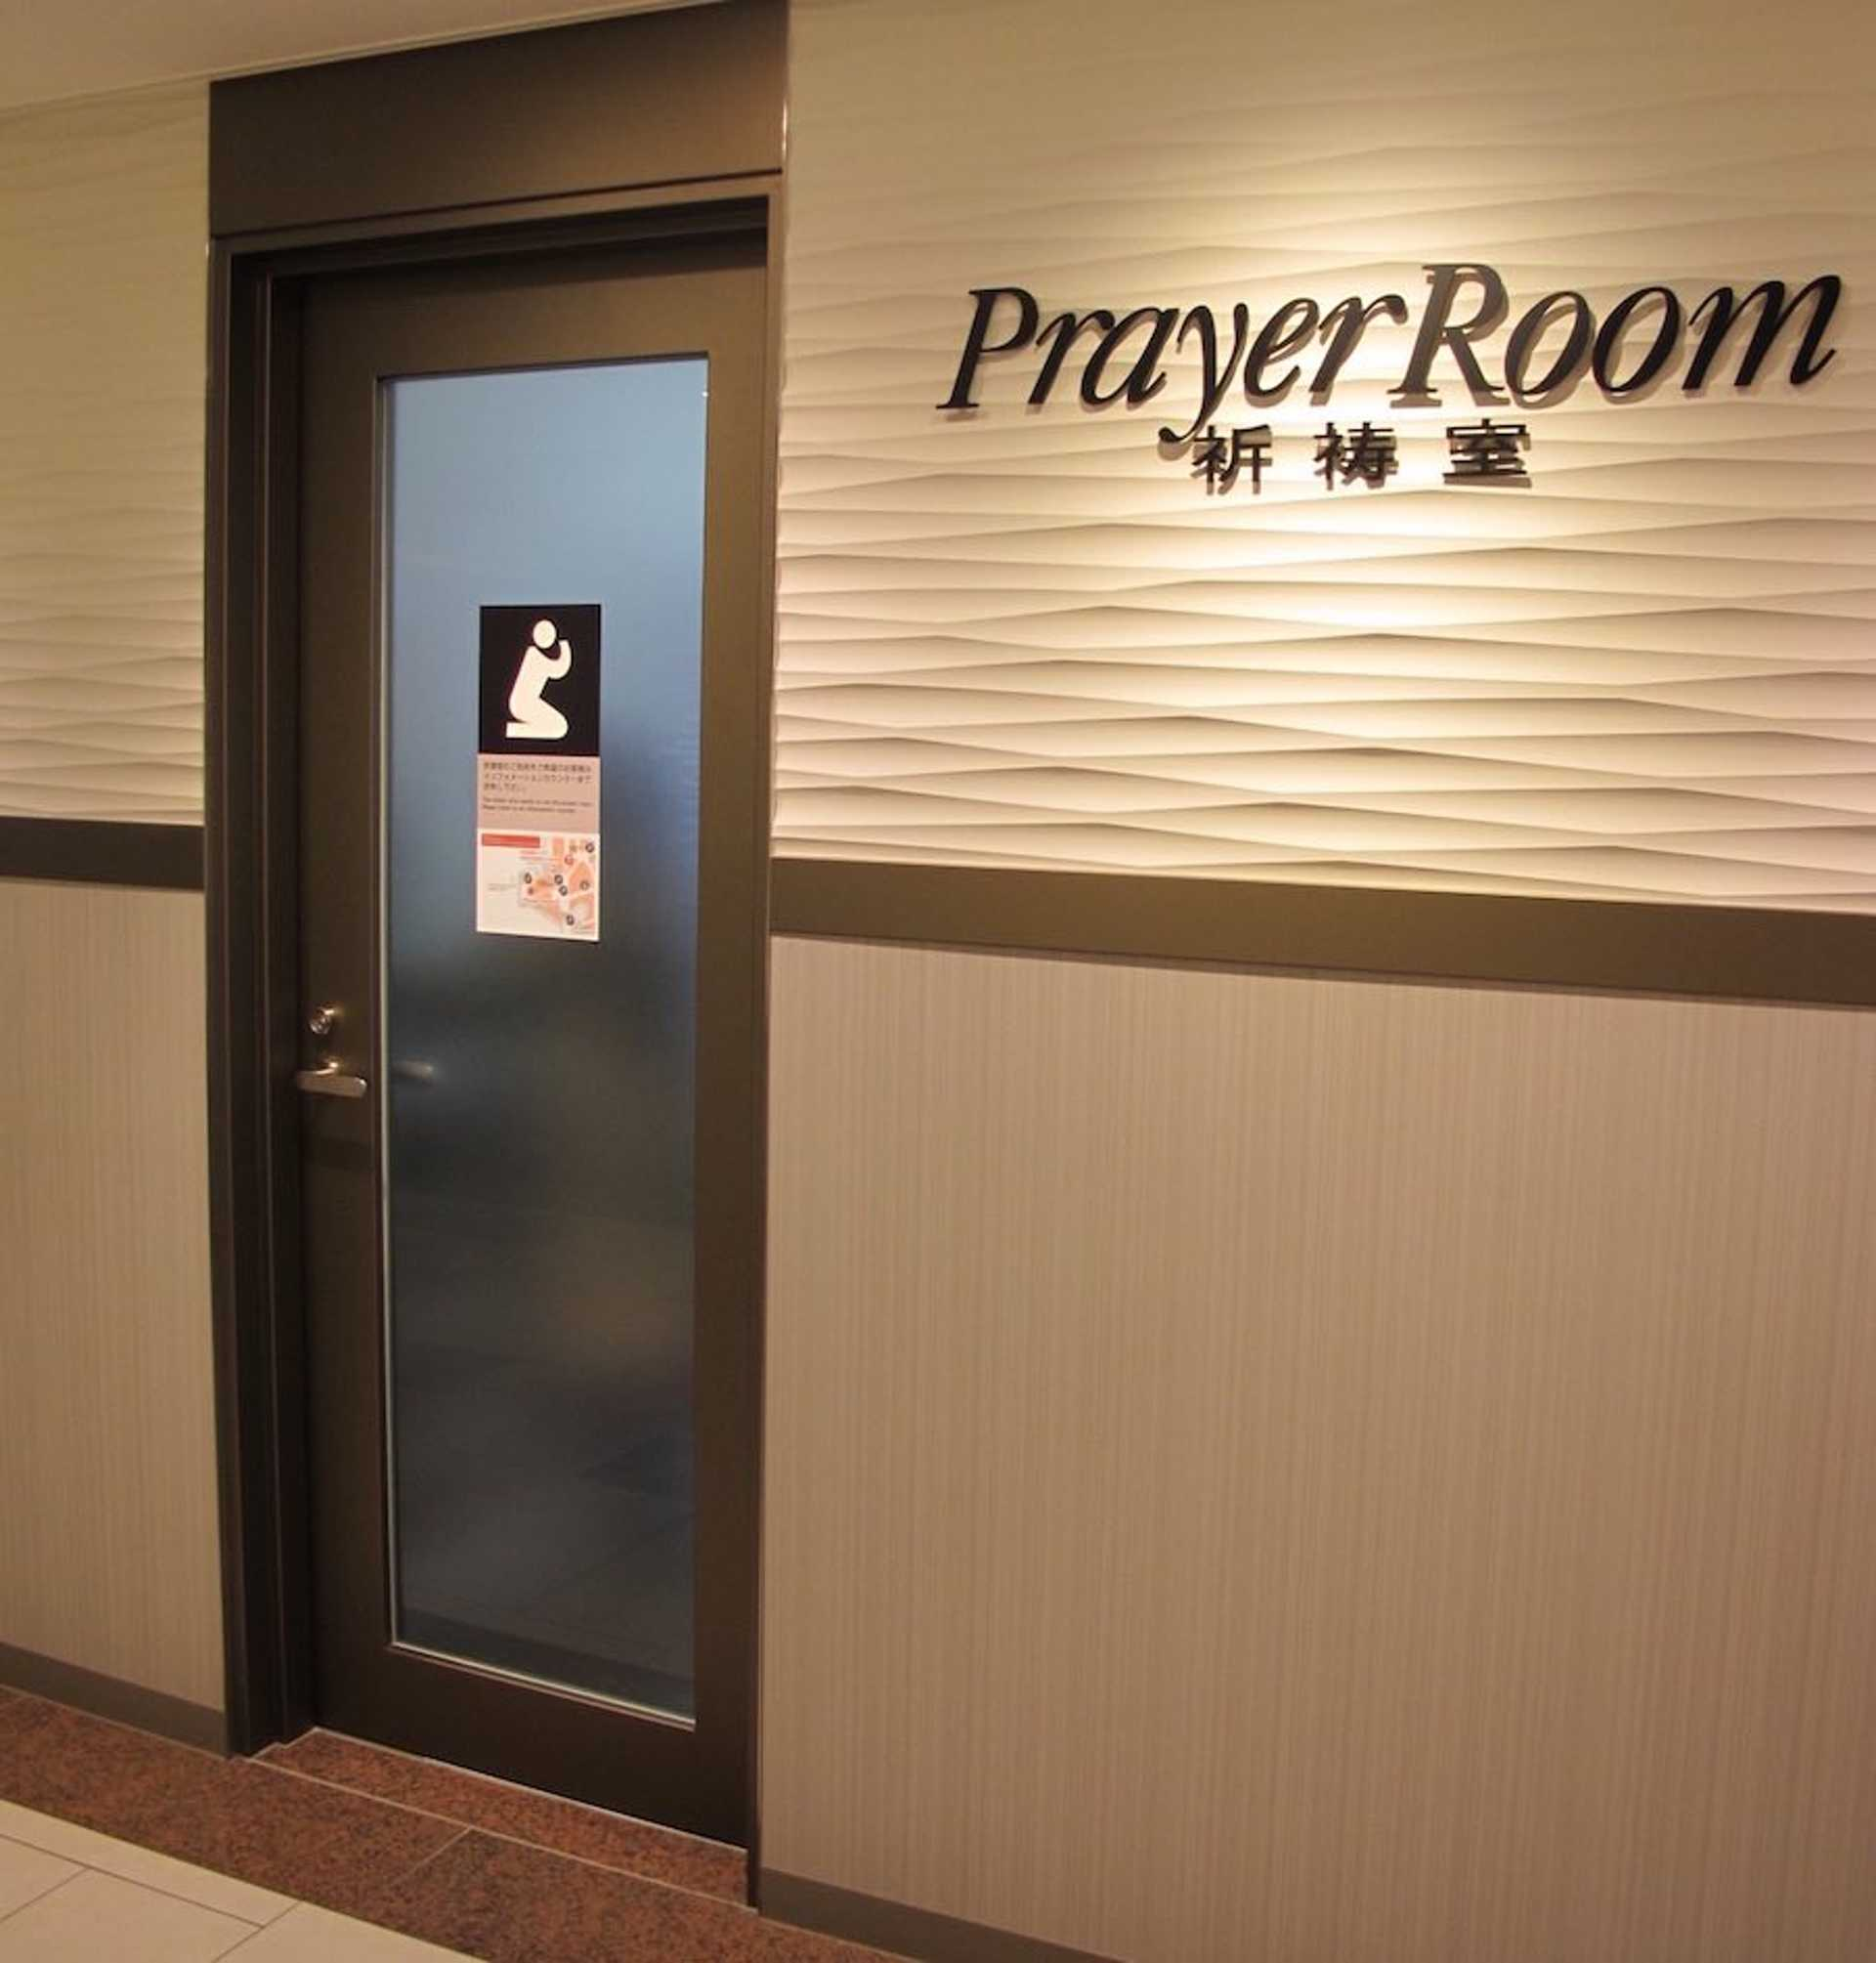 An attendant will guide you to the prayer room which is located on the same floor.